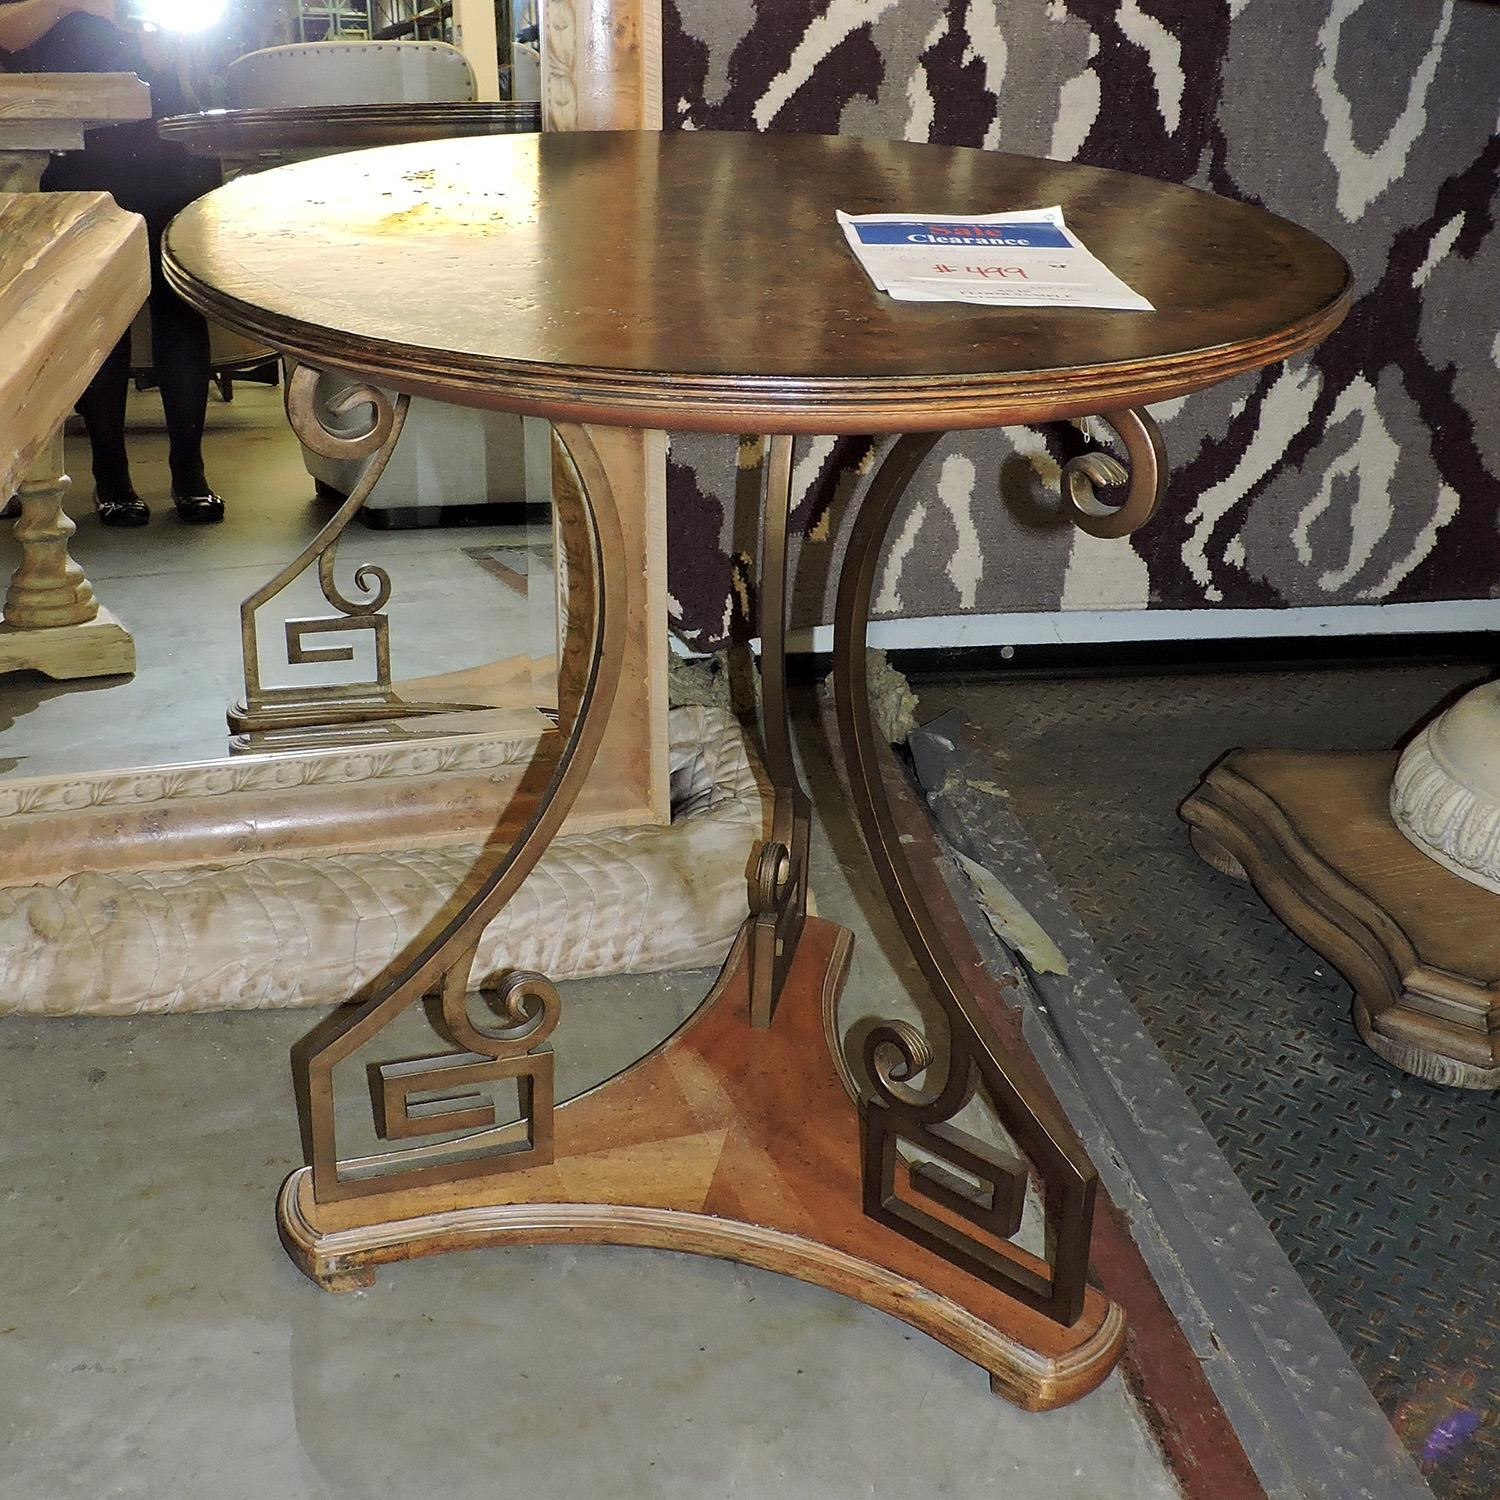 Stanley Furniture Clearance Clef Lamp Table - Item Number: 222651447